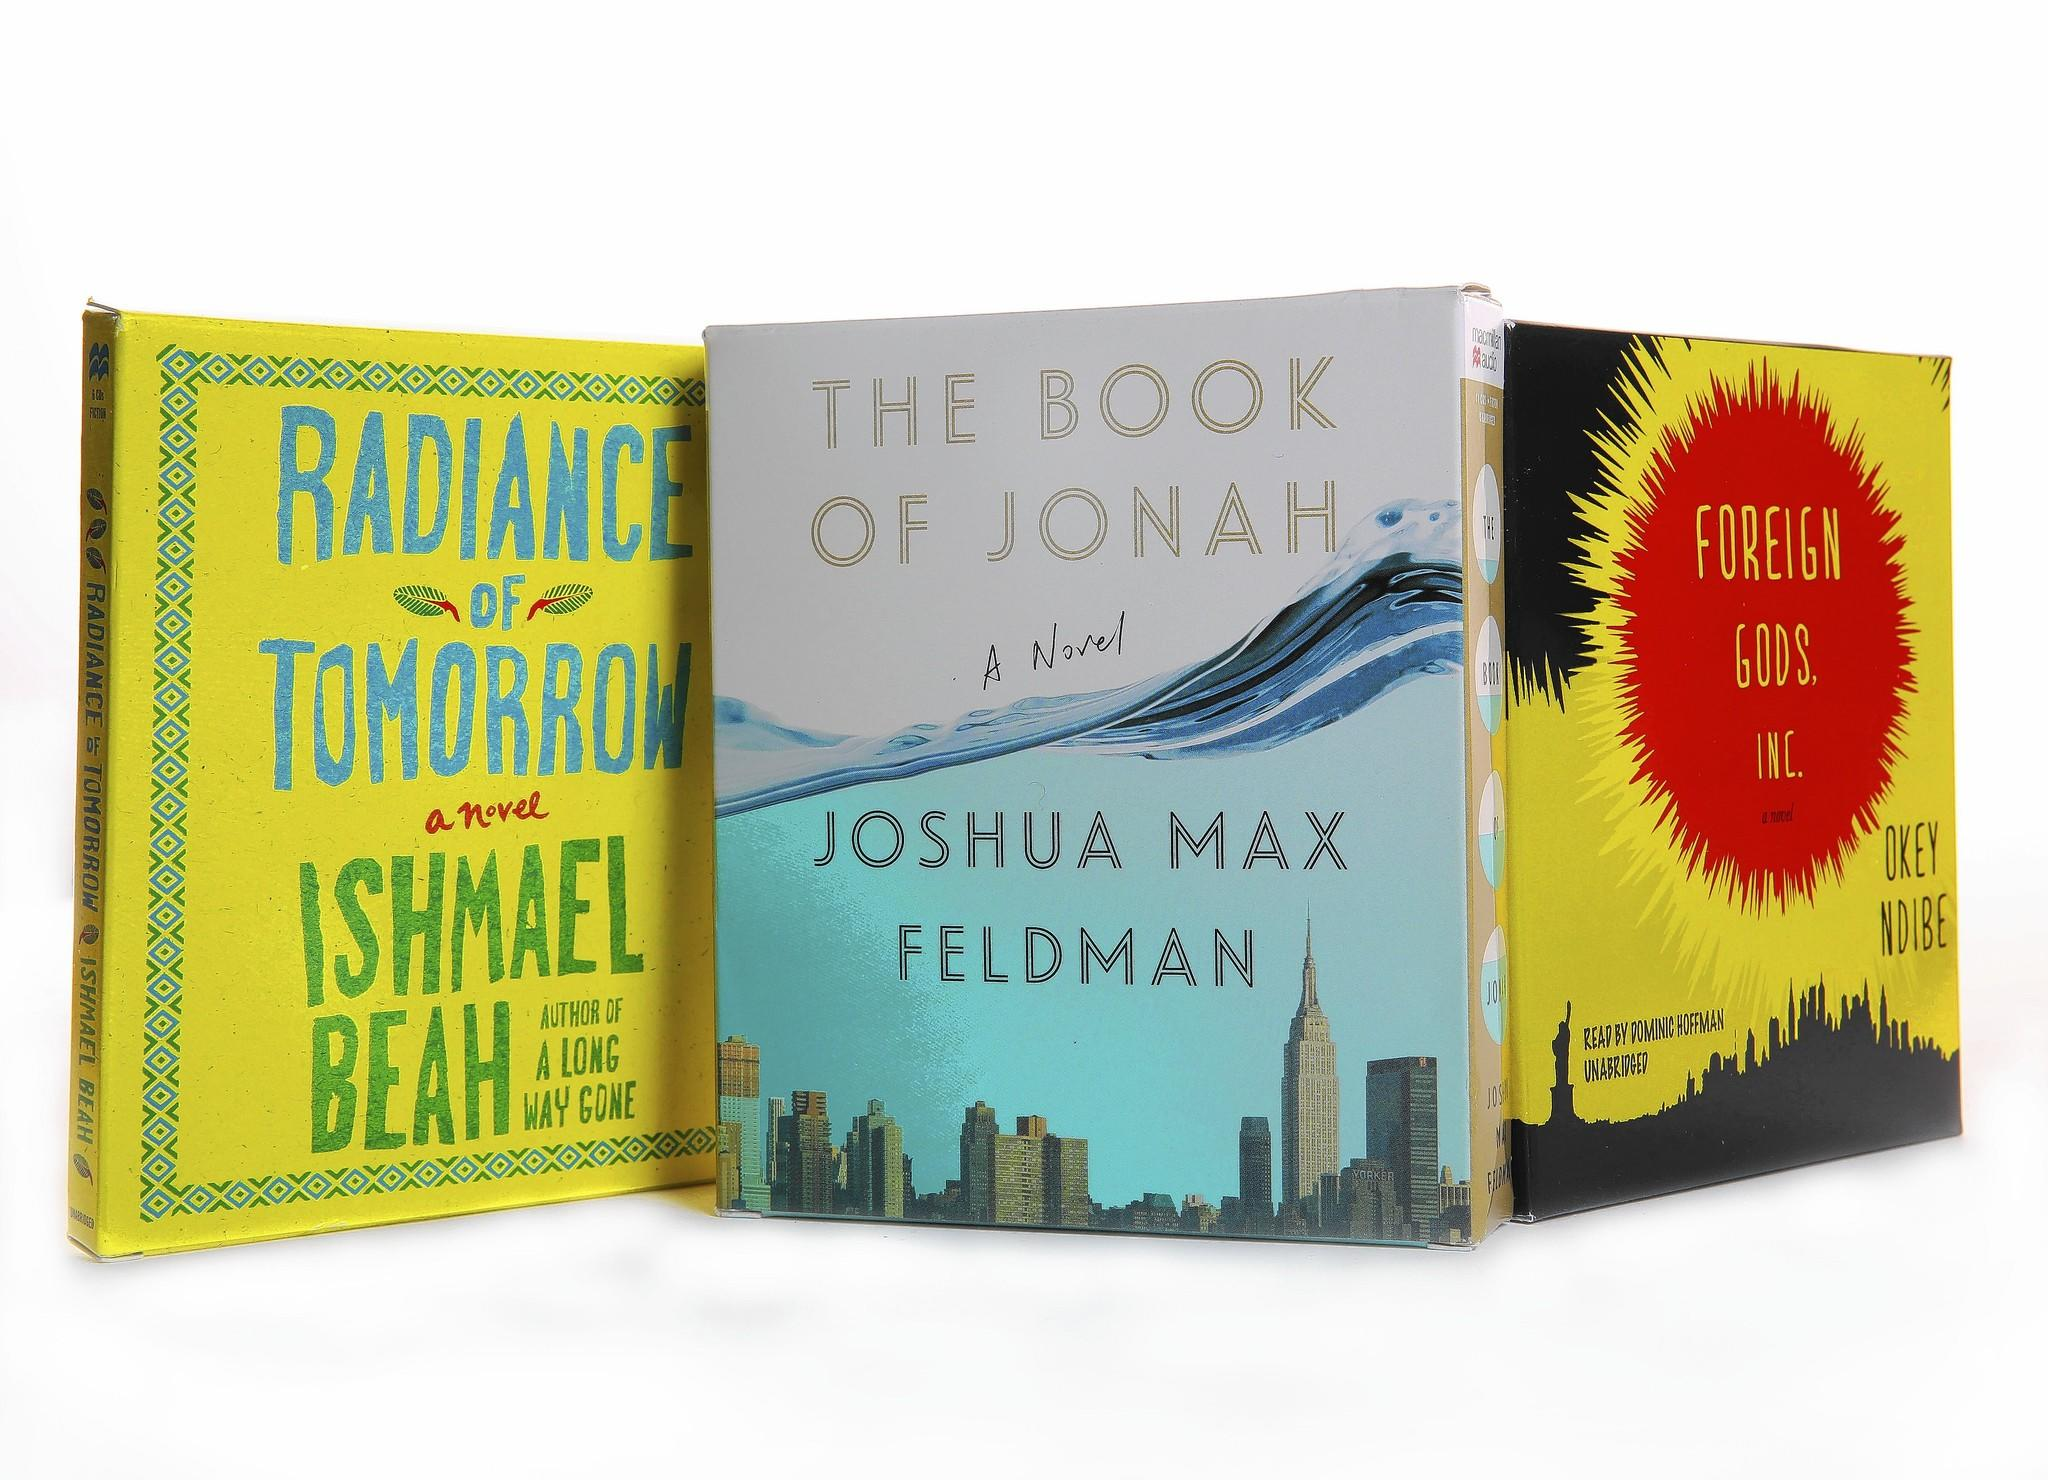 """""""Radiance of Tomorrow"""" by Ishmael Beah, """"The Book of Jonah"""" by Joshua Max Friedman, """"Foreign Gods, Inc."""" by Okey Ndibe"""